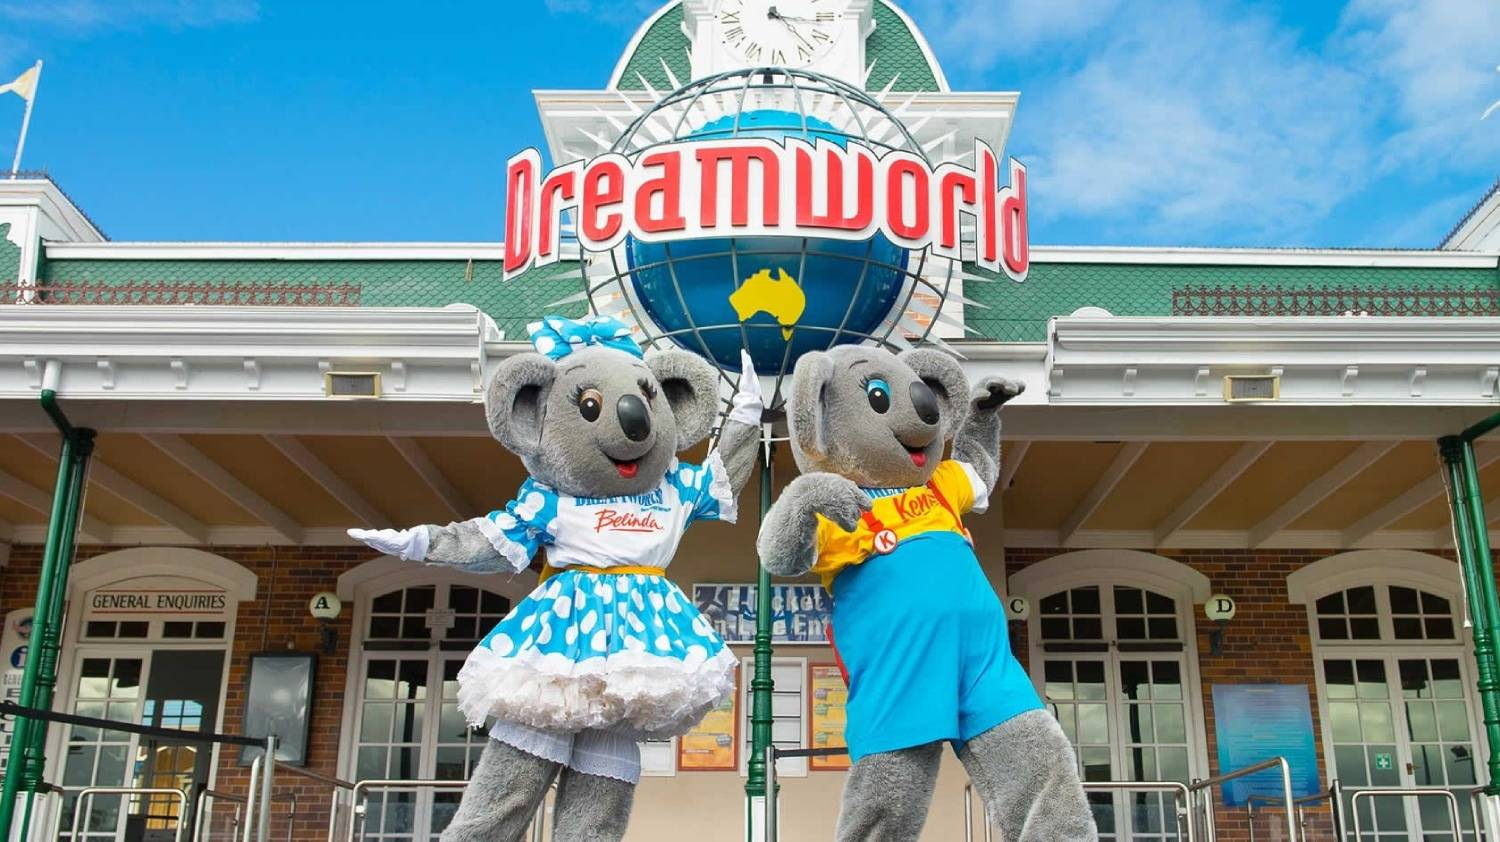 Dreamworld - Things To Do On The Gold Coast